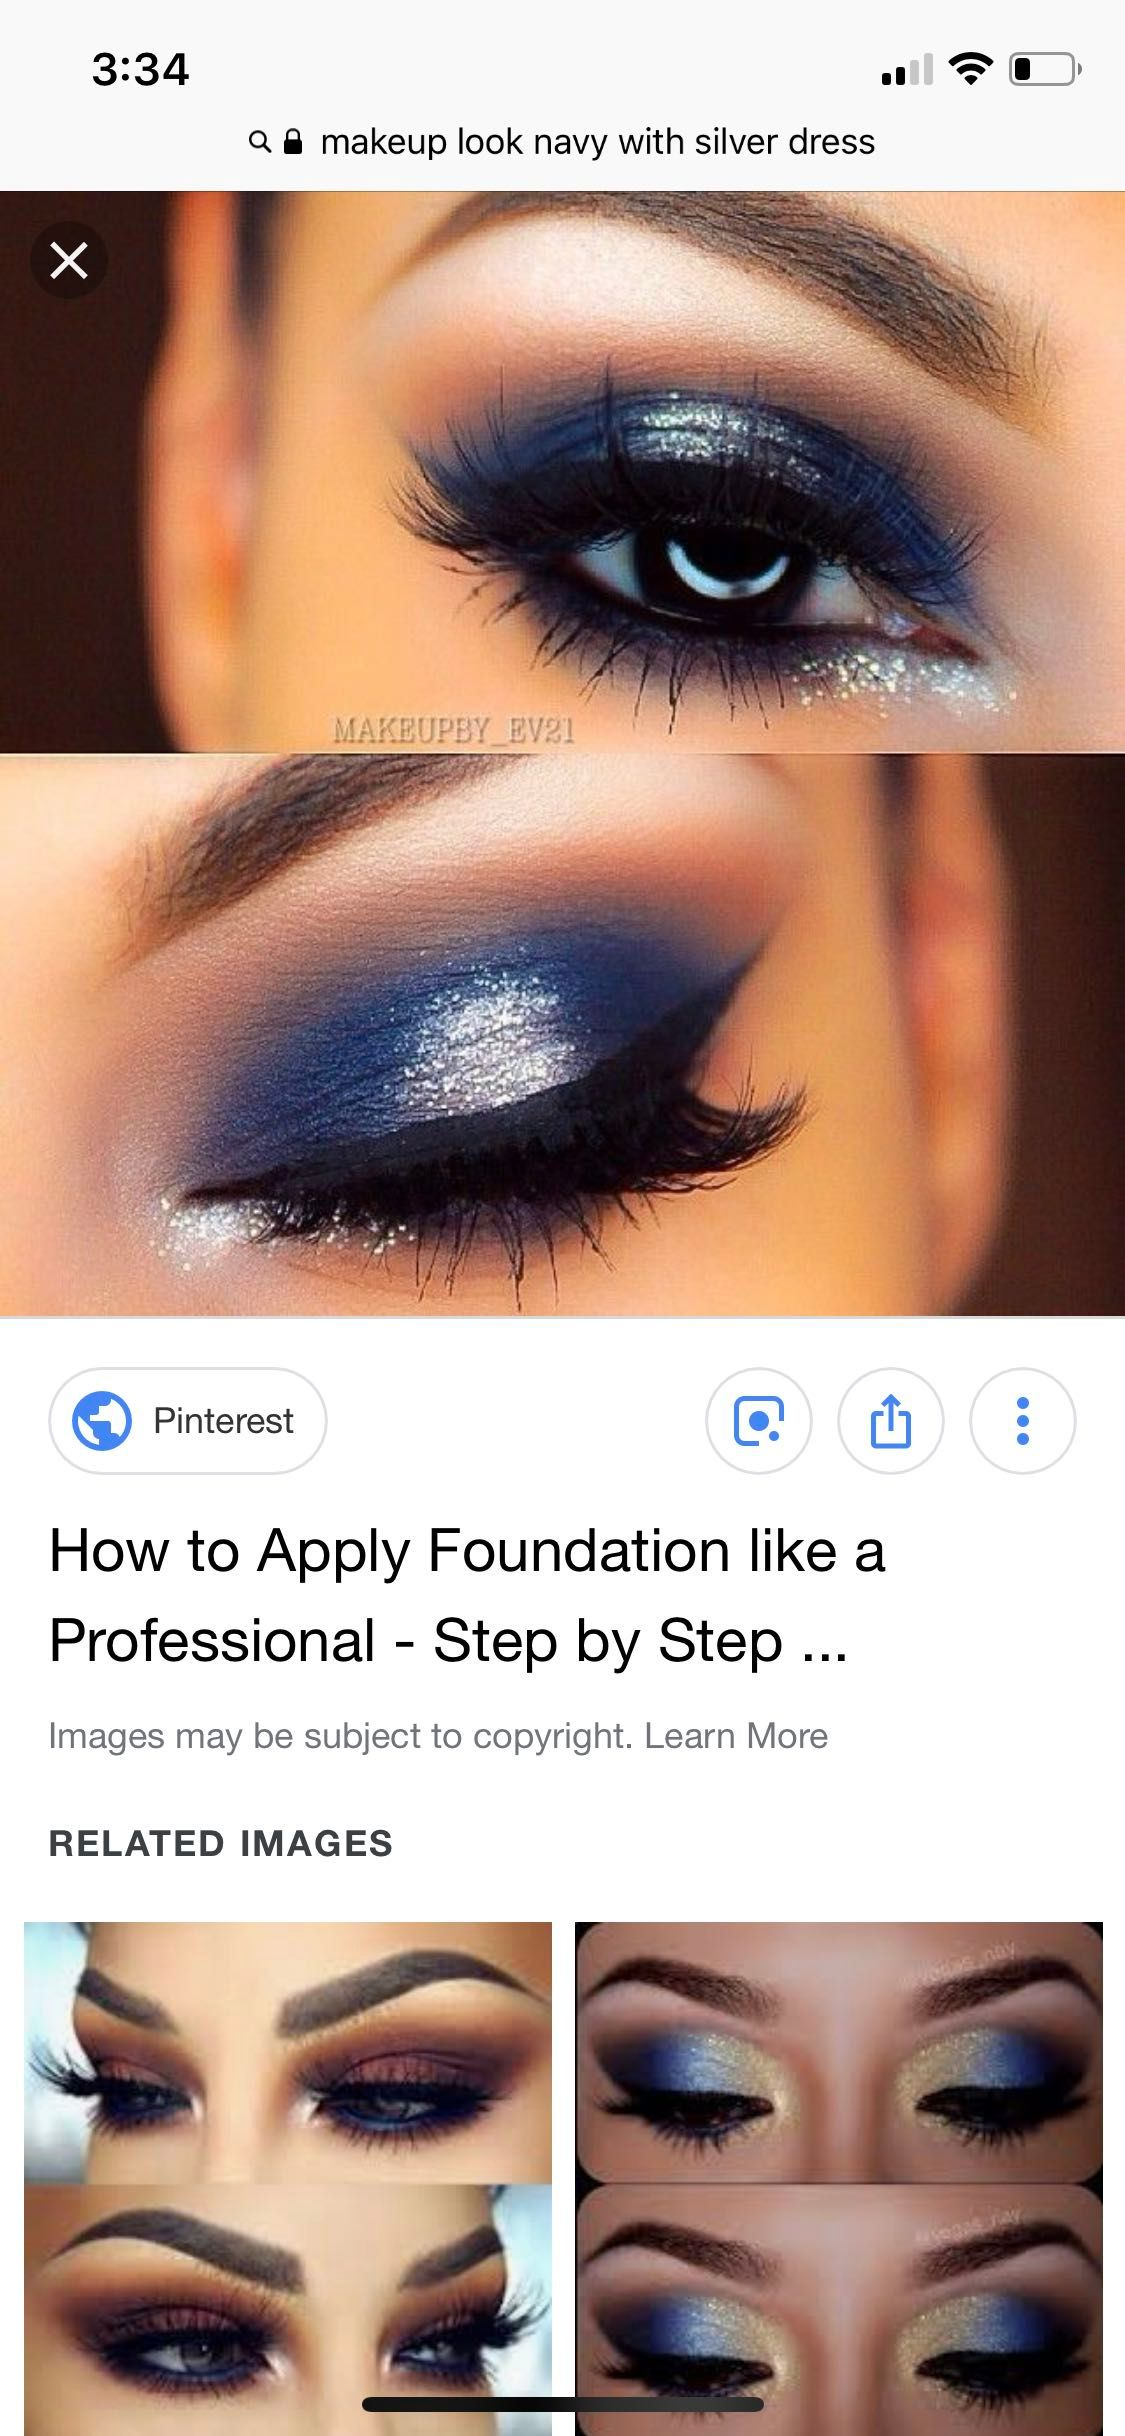 Eye Makeup For Navy Blue Prom Dress